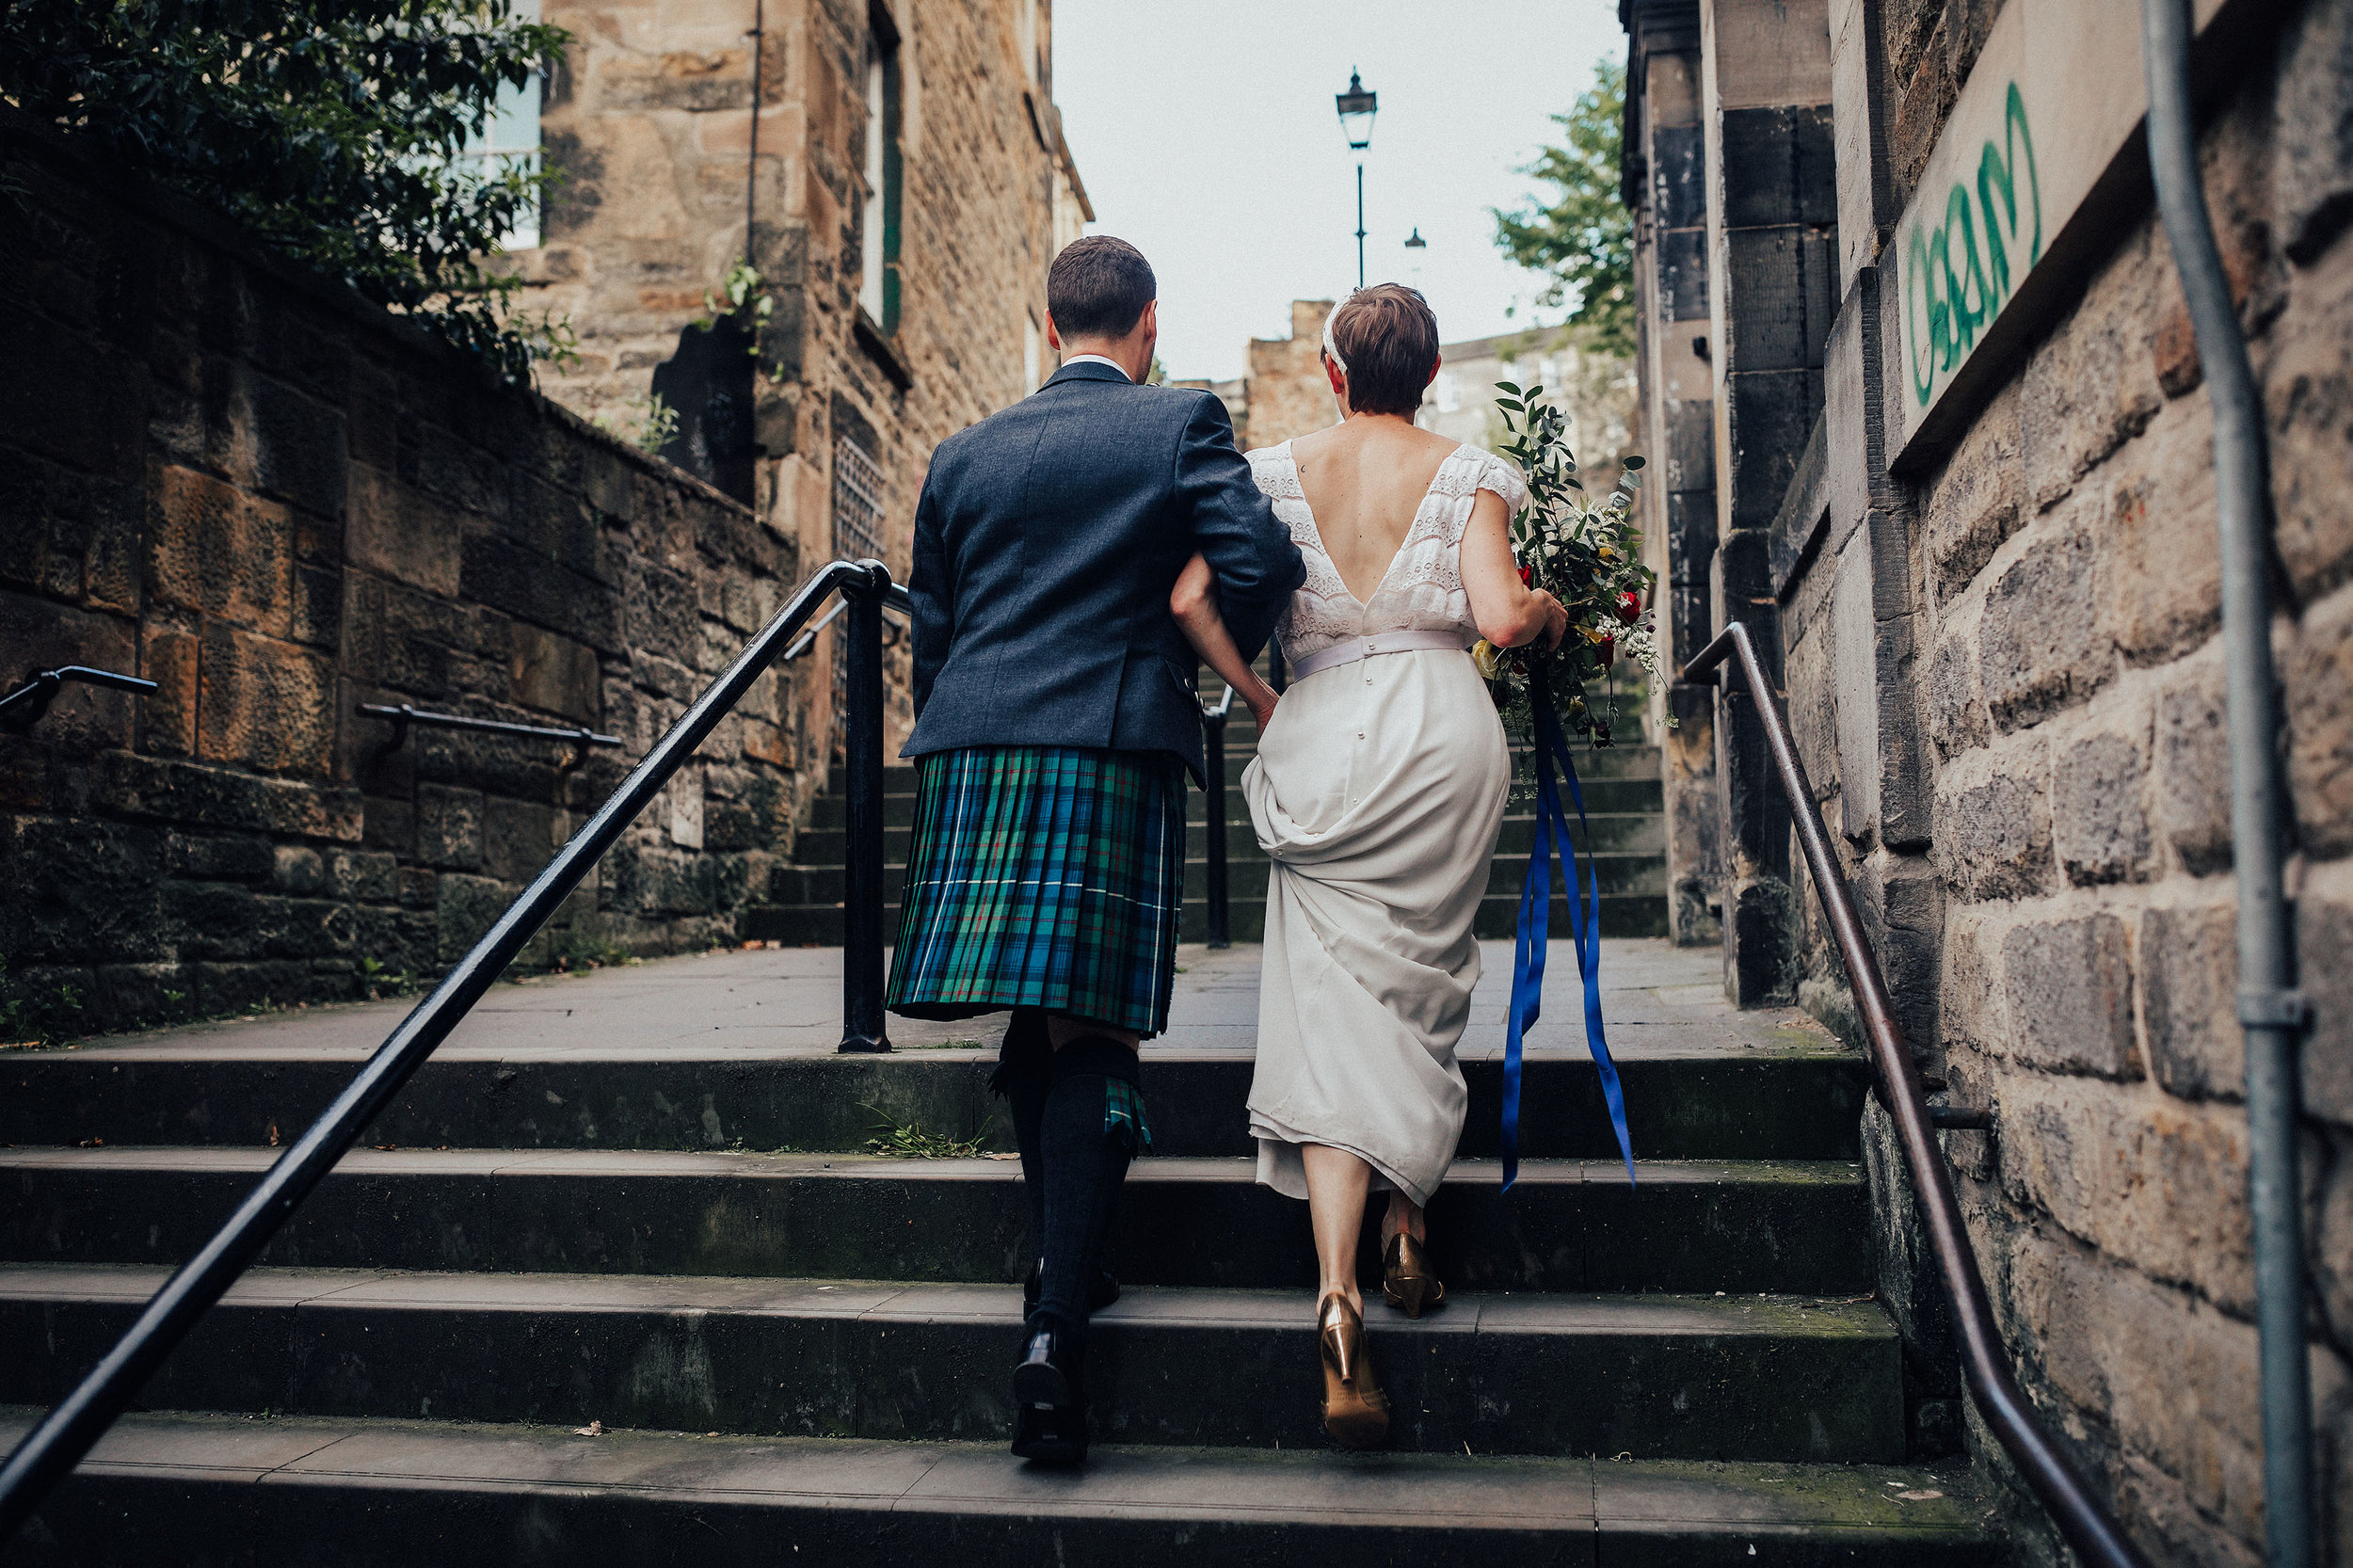 TIMBERYARD_EDINBURGH_WEDDING_PJ_PHILLIPS_PHOTOGRAPHY_177.jpg